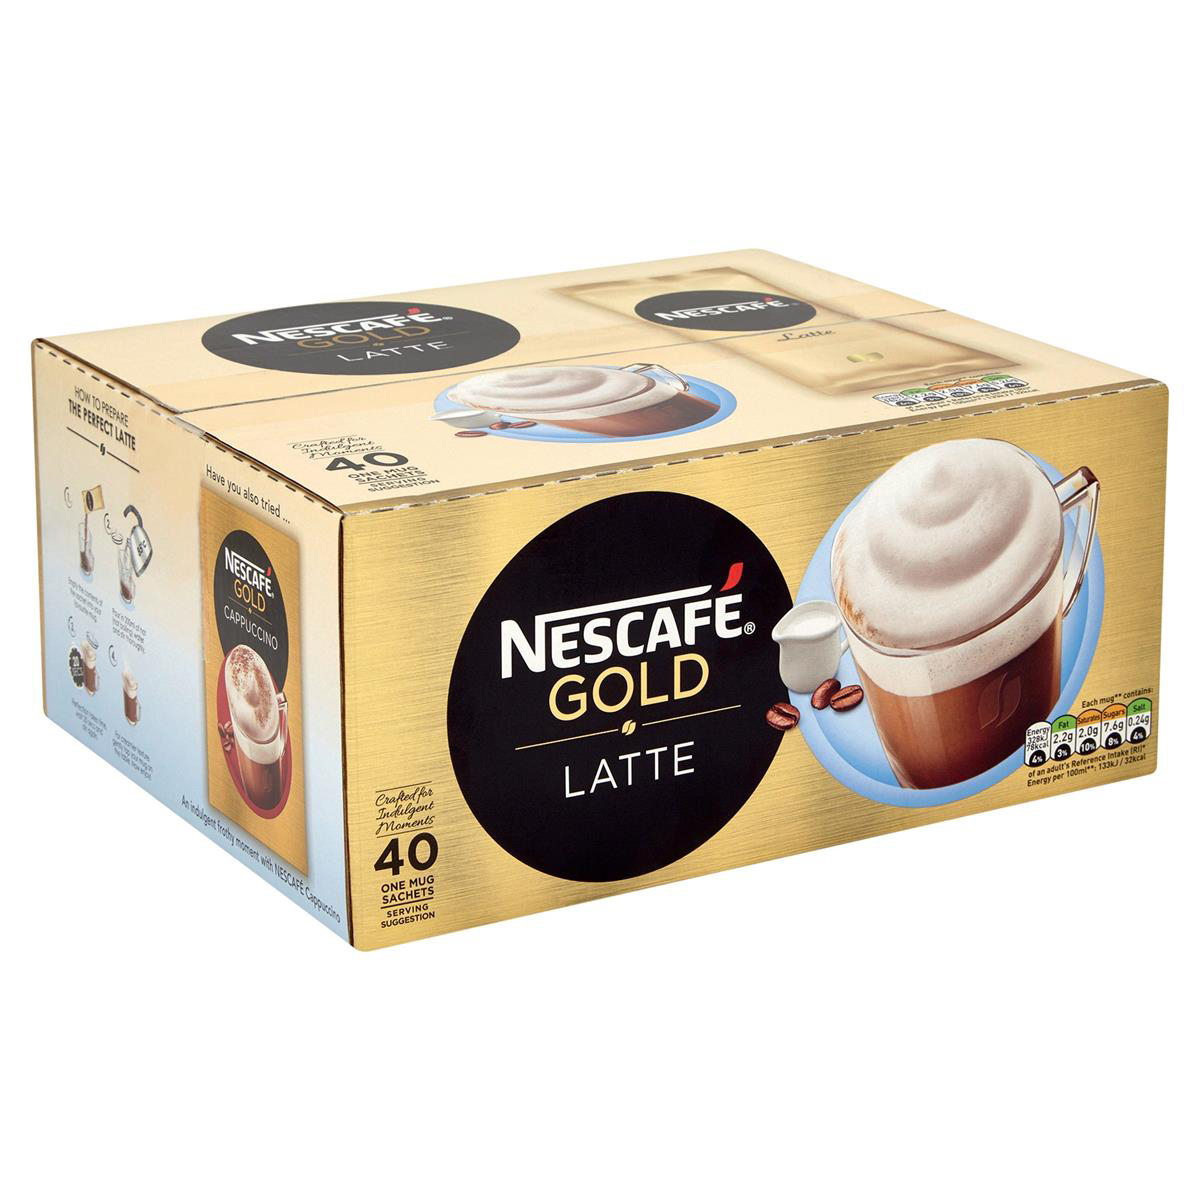 Nescafe Gold Latte Instant Coffee Sachets One Cup Ref 12314884 Pack 40